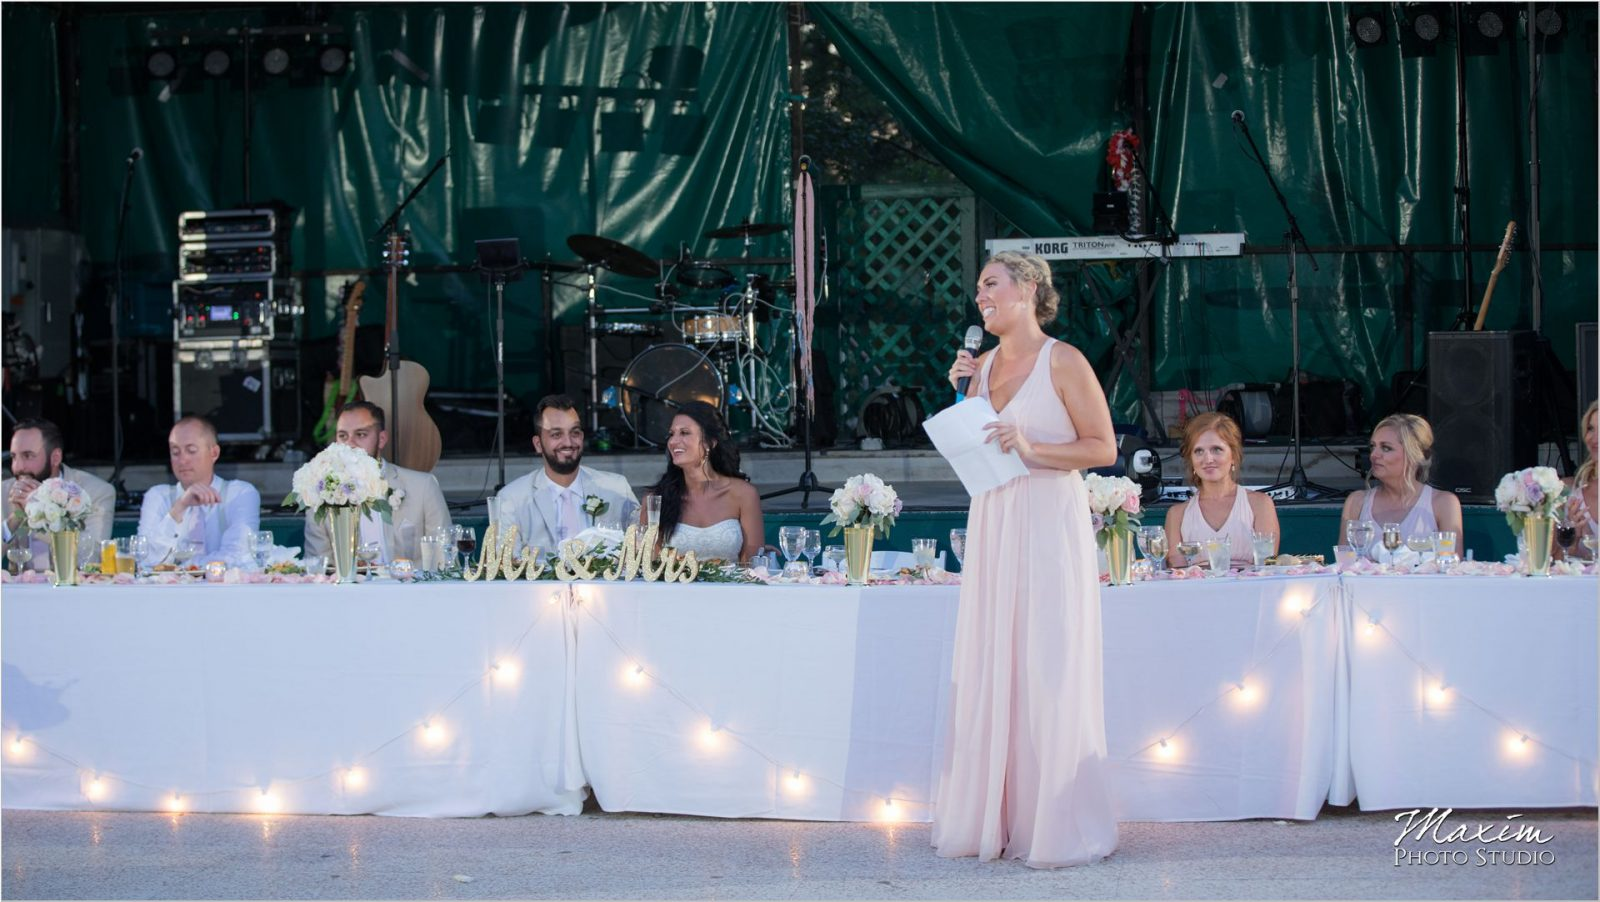 Moonlight Gardens Coney Island Wedding Reception toasts